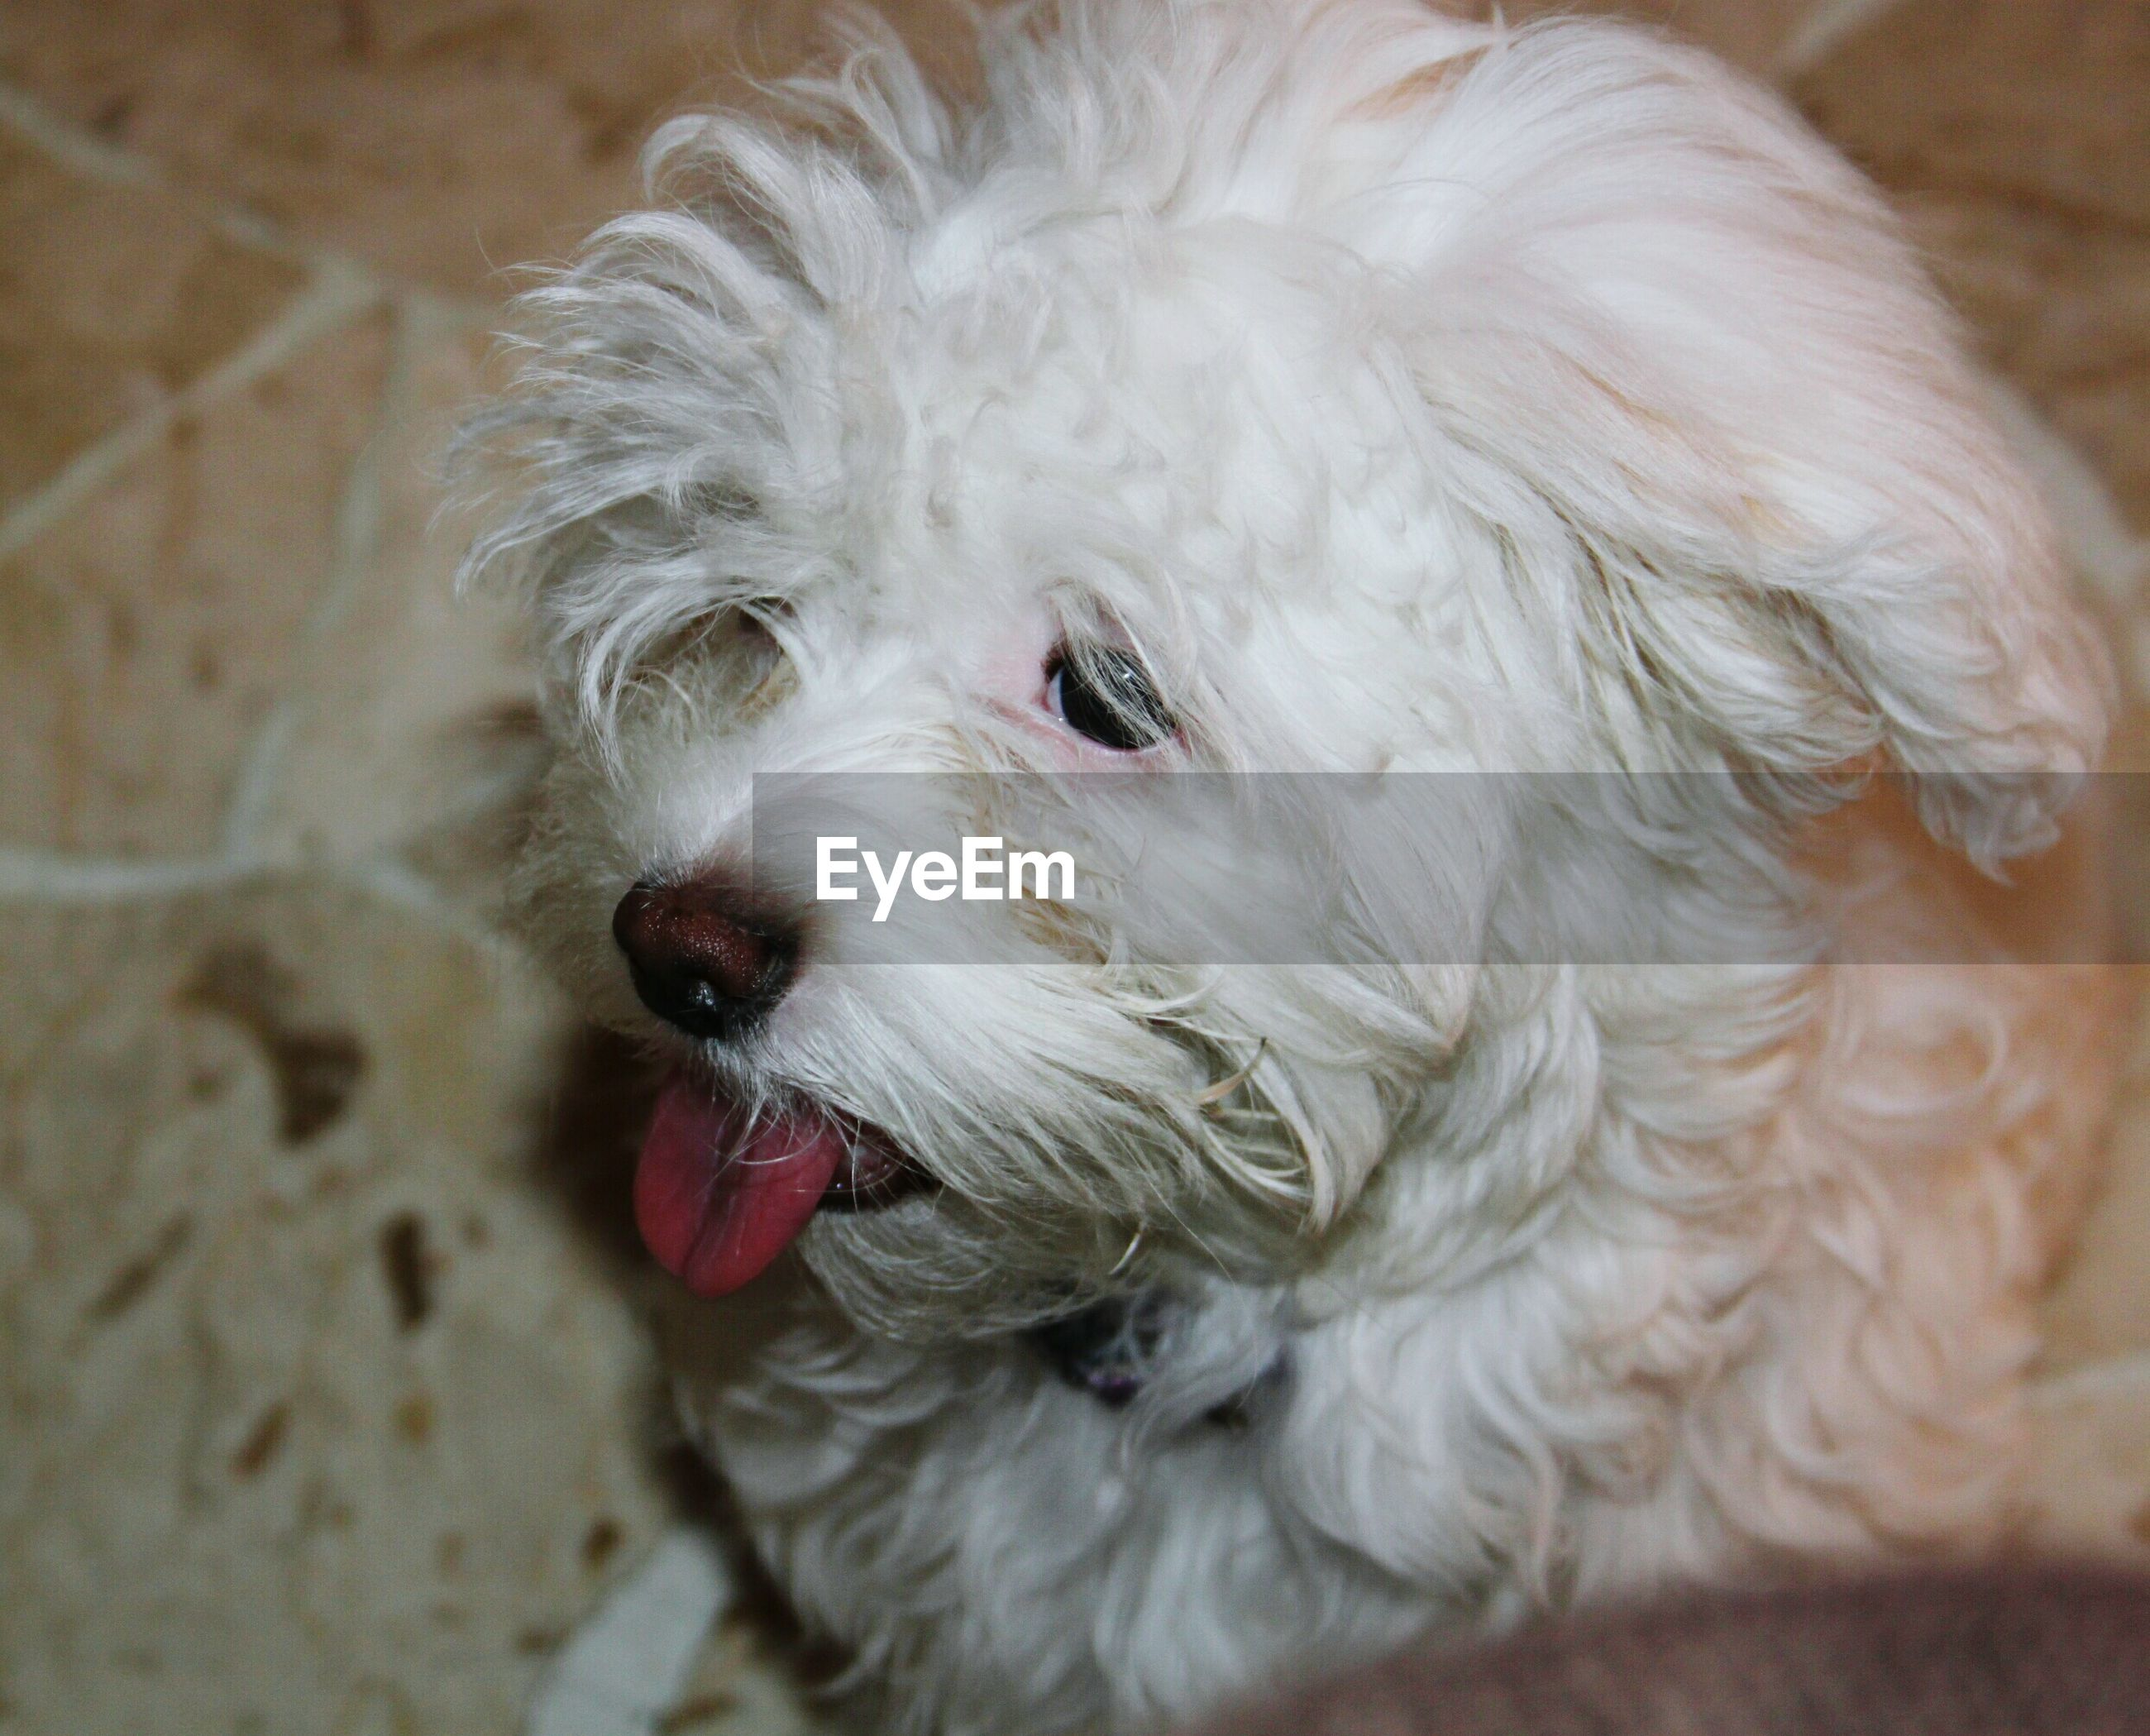 domestic animals, animal themes, pets, one animal, dog, mammal, indoors, close-up, animal head, animal hair, animal body part, portrait, looking at camera, cute, white color, focus on foreground, no people, home interior, mouth open, young animal